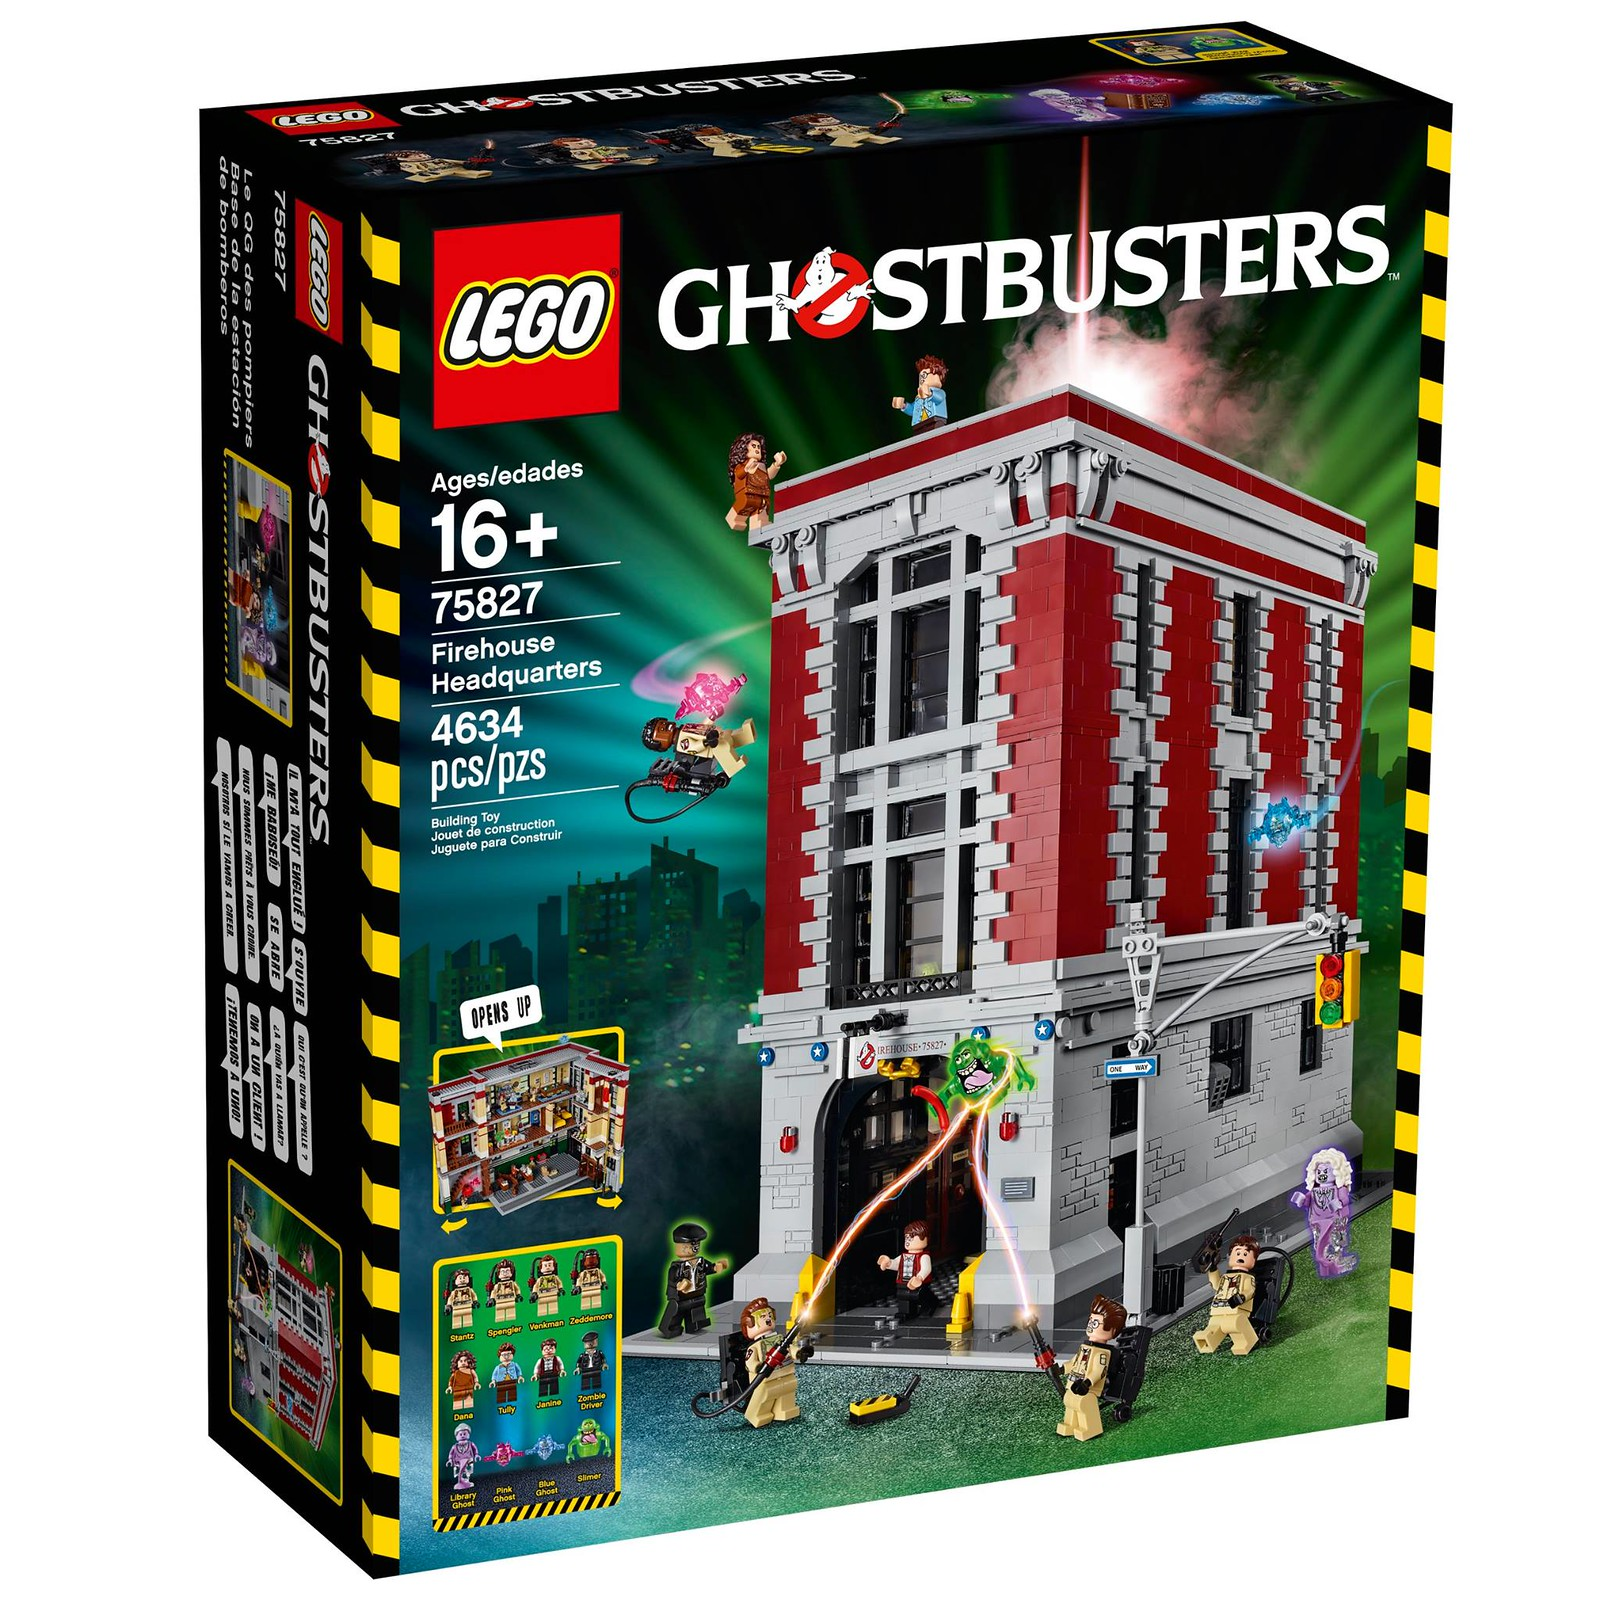 [LEGO] SOS Fantômes - Ghostbusters - Page 4 22948216895_7b857448a0_h